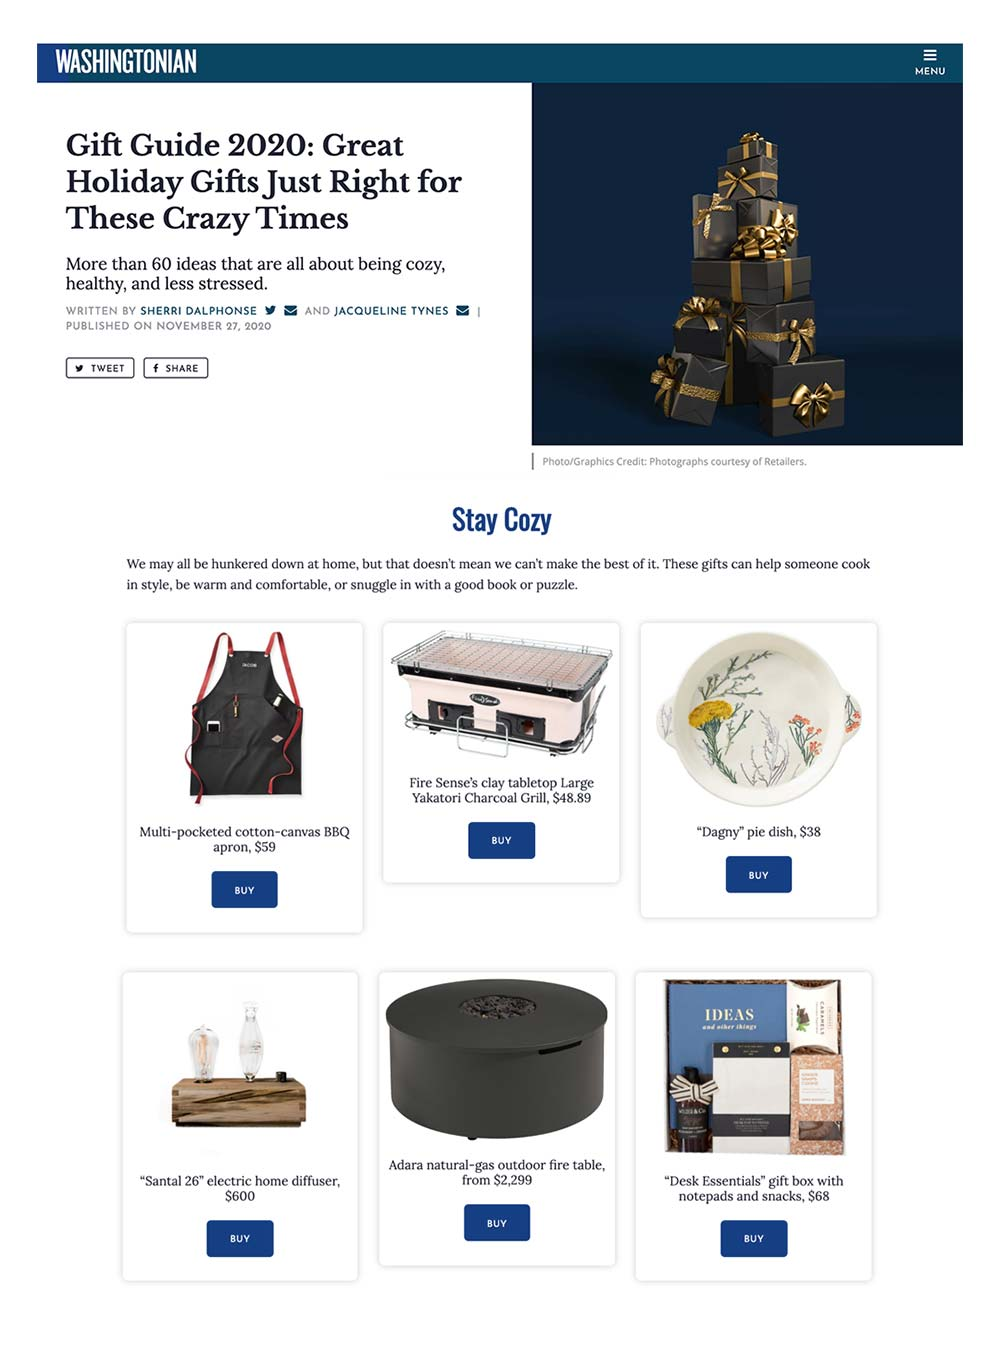 kadoo washingtonian magazine great holiday gift guide 2020 great ideas all about being cozy while hunkering down at home